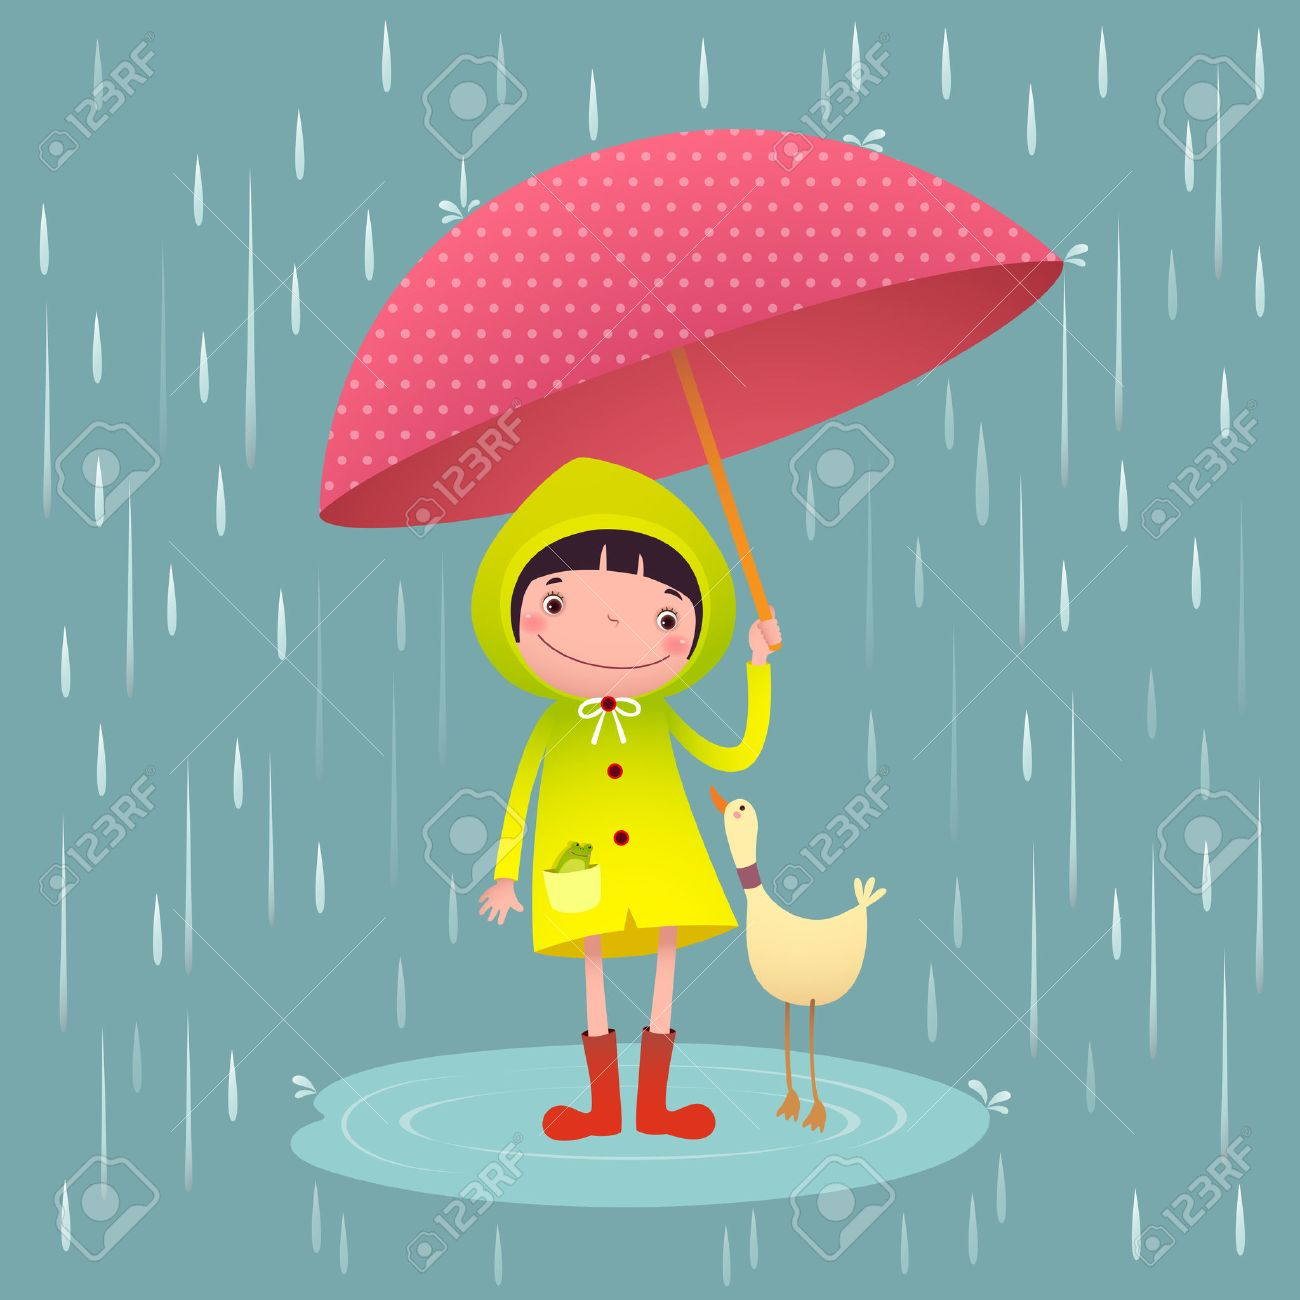 illustration of cute and friends with umbrella in rainy